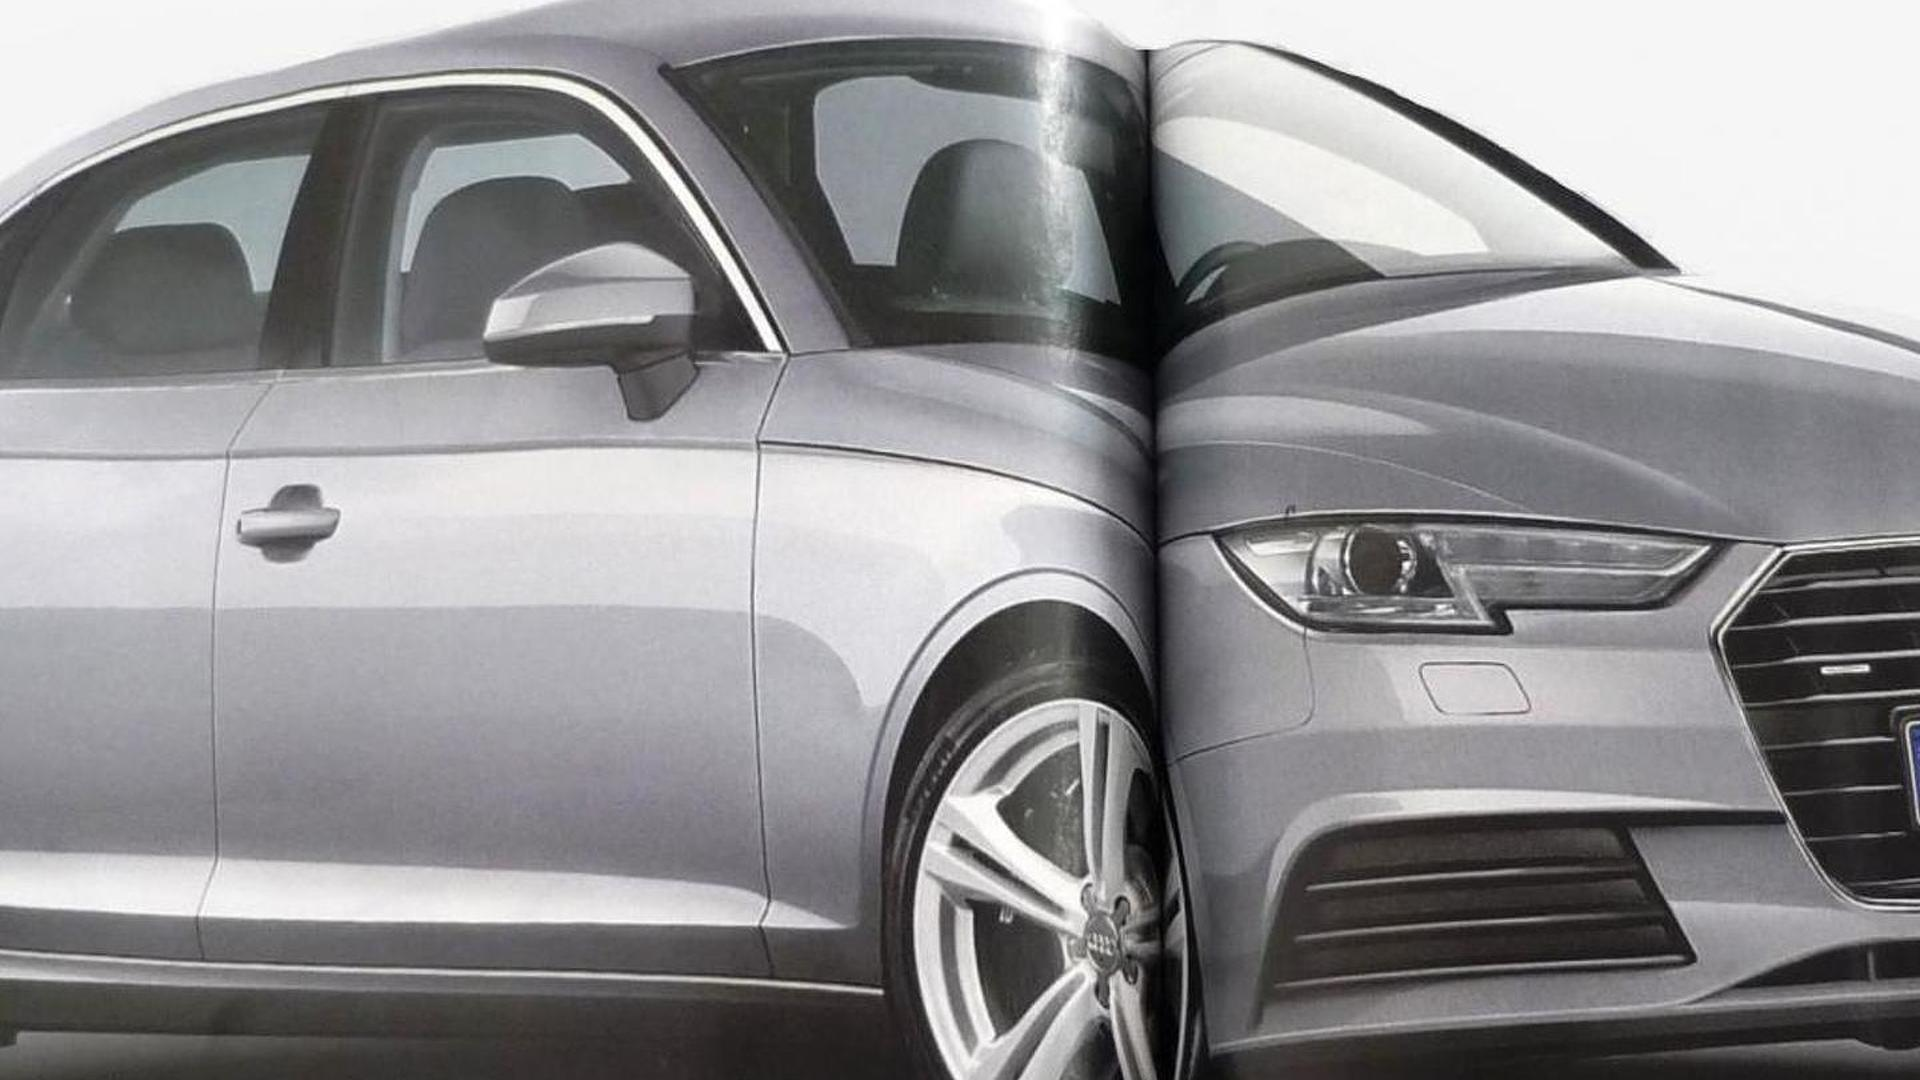 Latest 2016 Audi A4 renderings are likely the most accurate so far